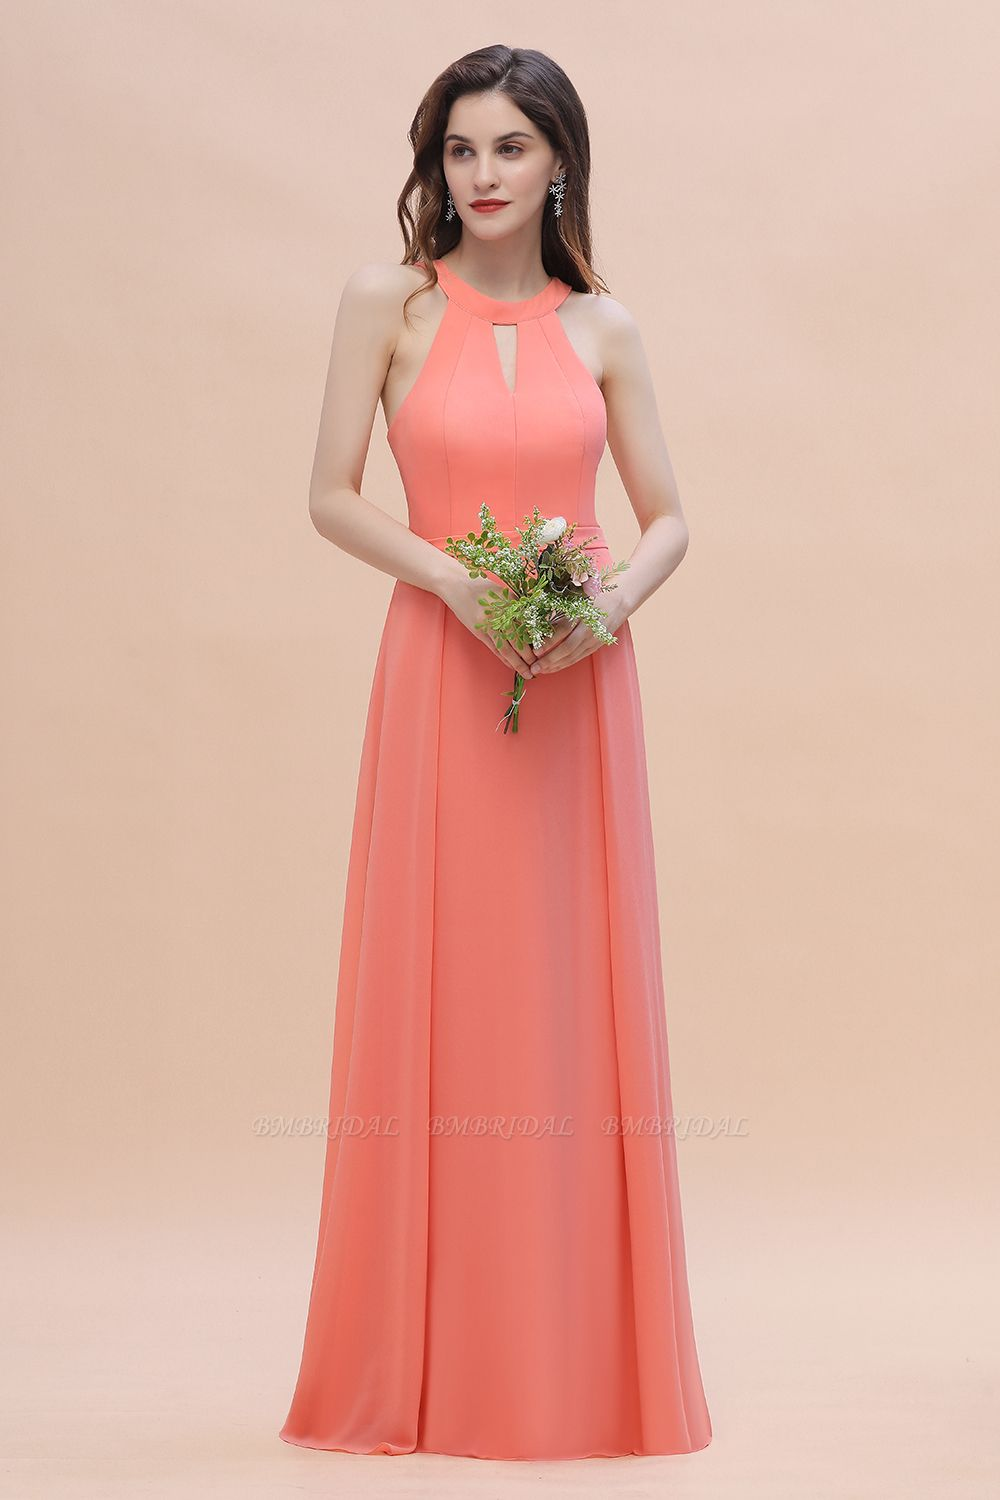 BMbridal Simple Jewel Sleeveless Coral Chiffon Bridesmaid Dress Online